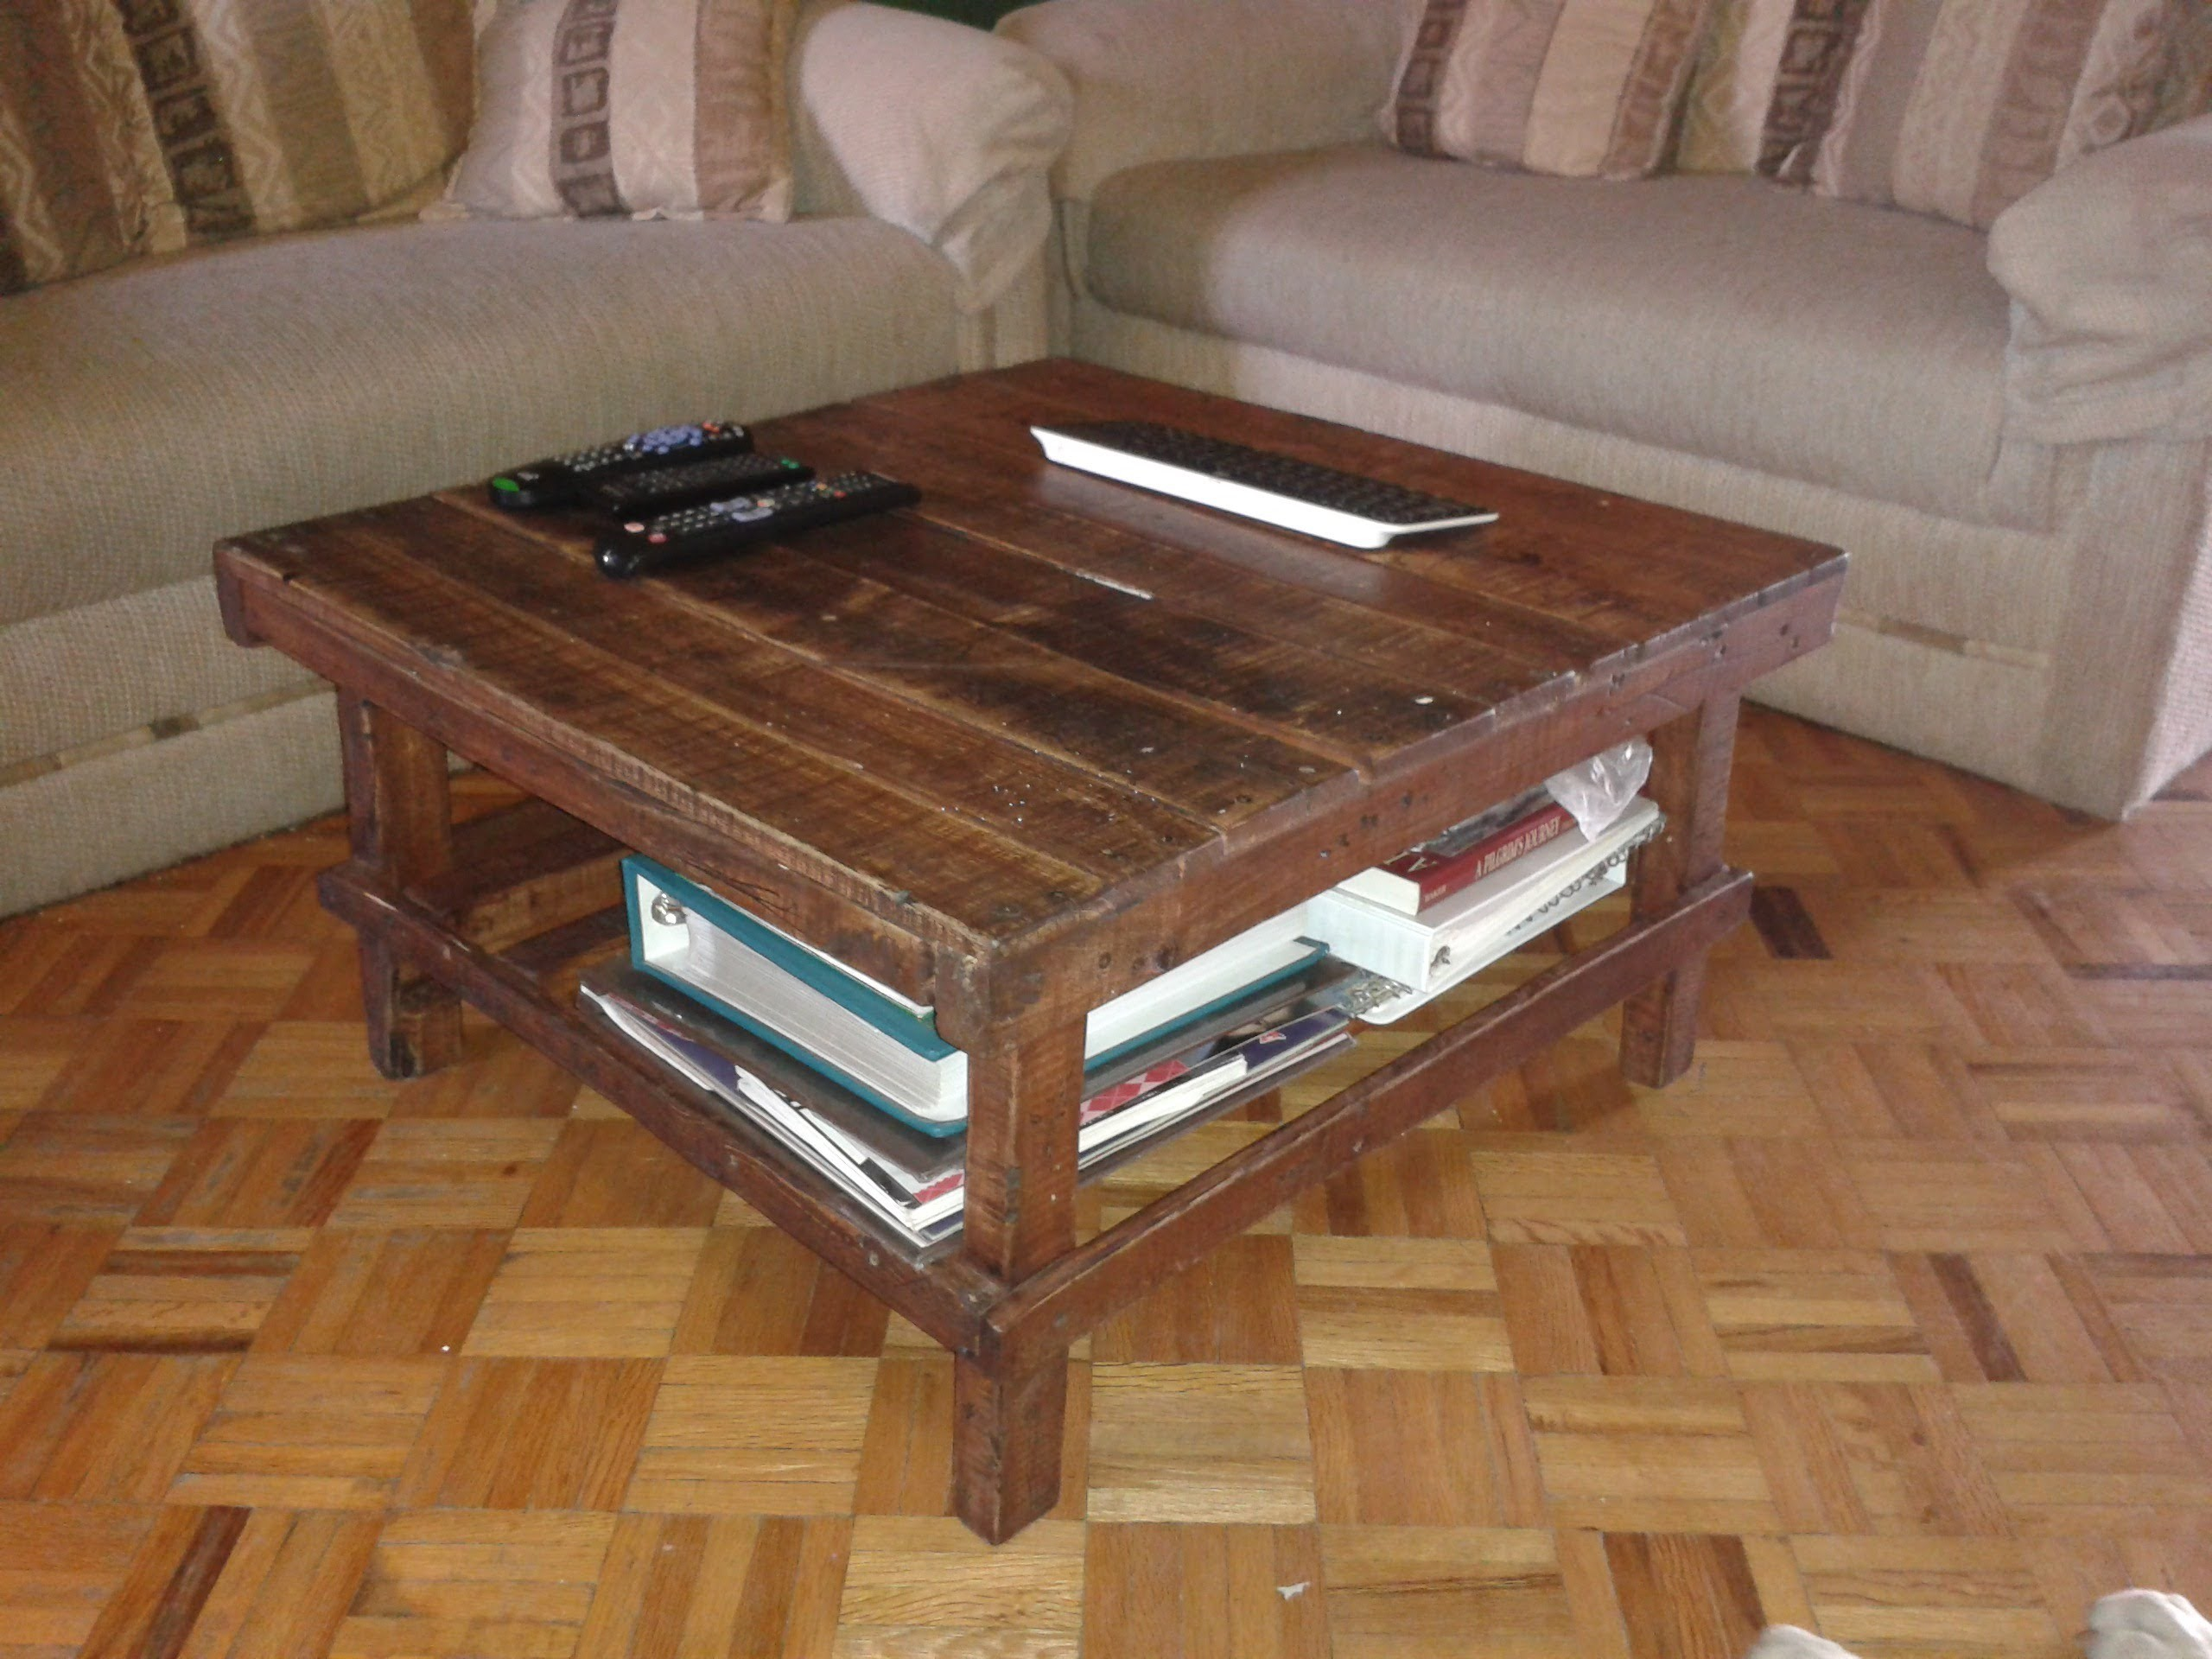 wood coffee tables plans bedside table woodworking beautiful diy pallet with storage lovely buildod accent small white end top commercial tall patio square tablecloth drink